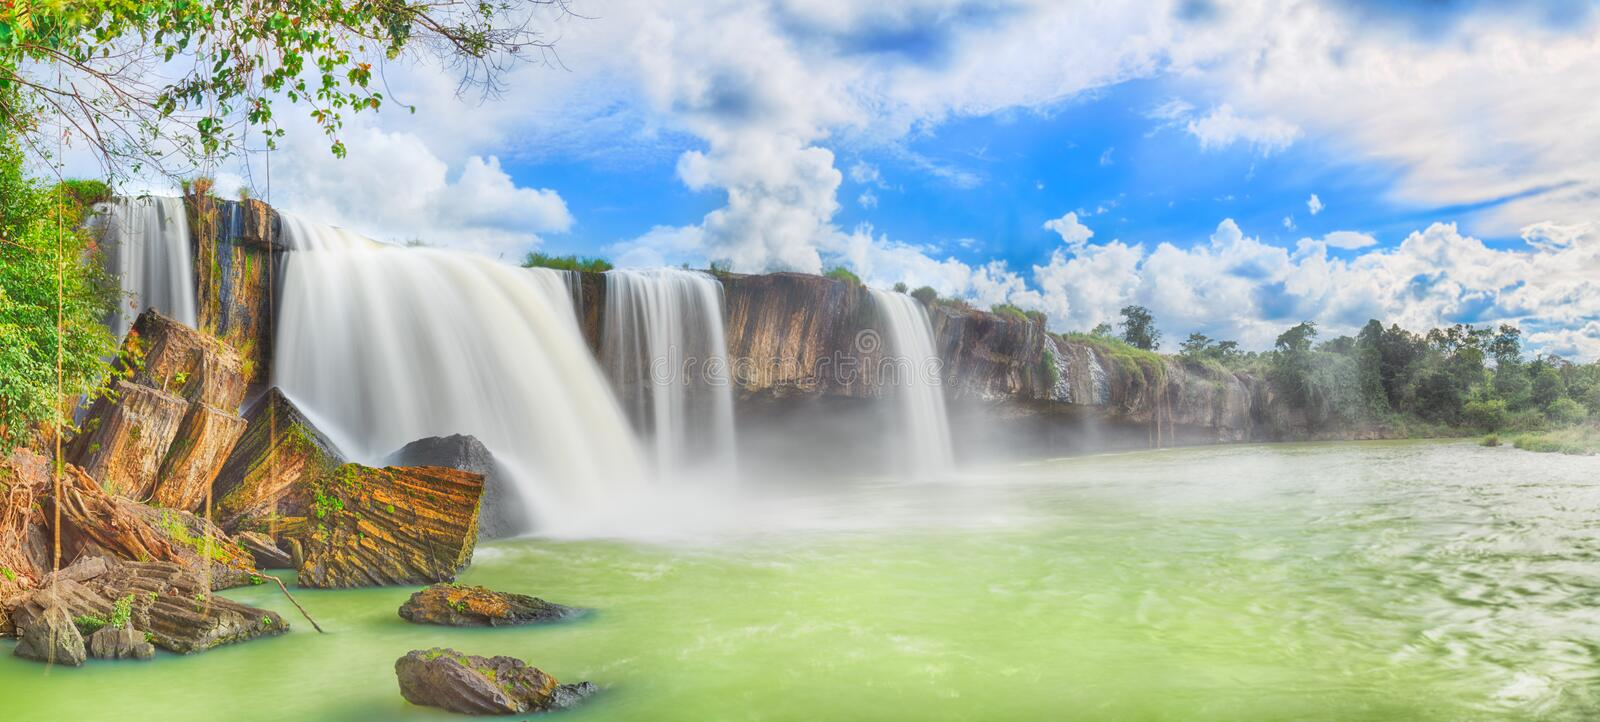 Dry Nur waterfall royalty free stock photography